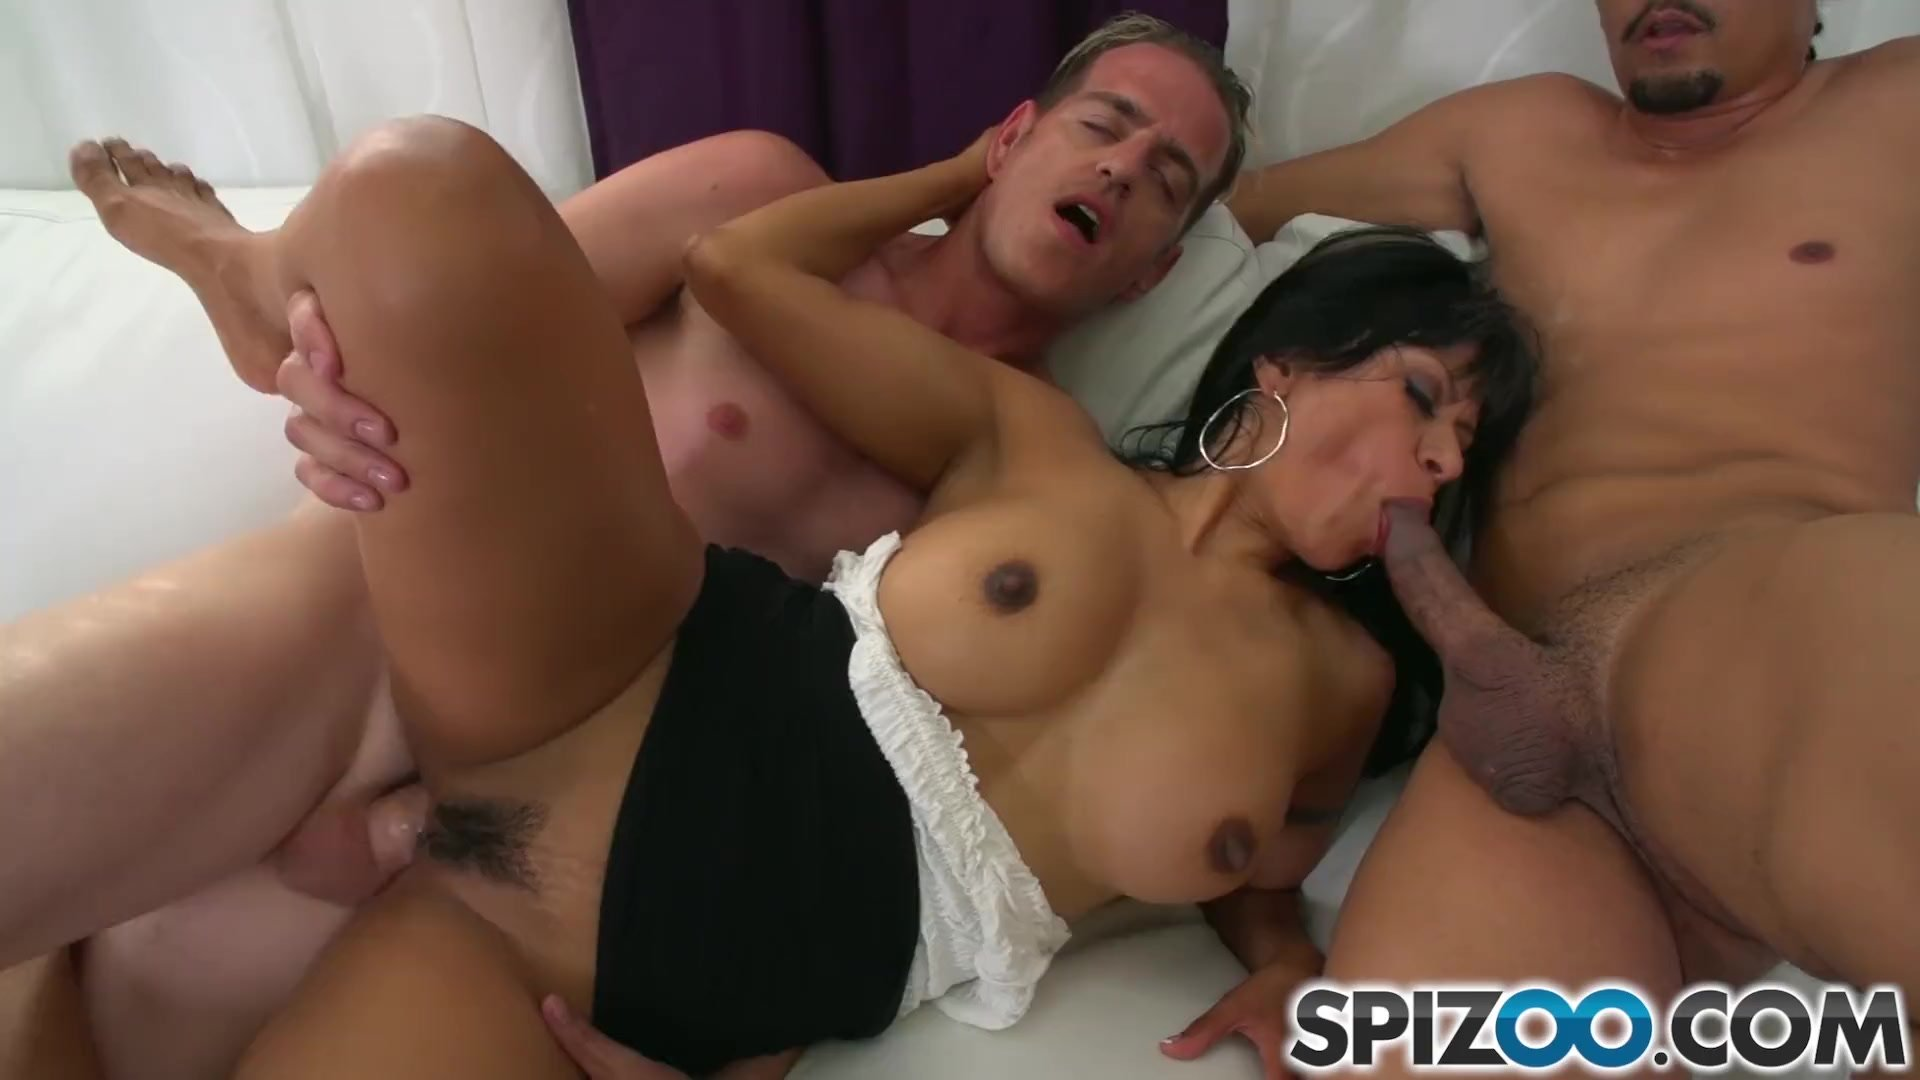 Spizoo - Gabby Quinteros is fucked by two big dicks, big booty & big boobs